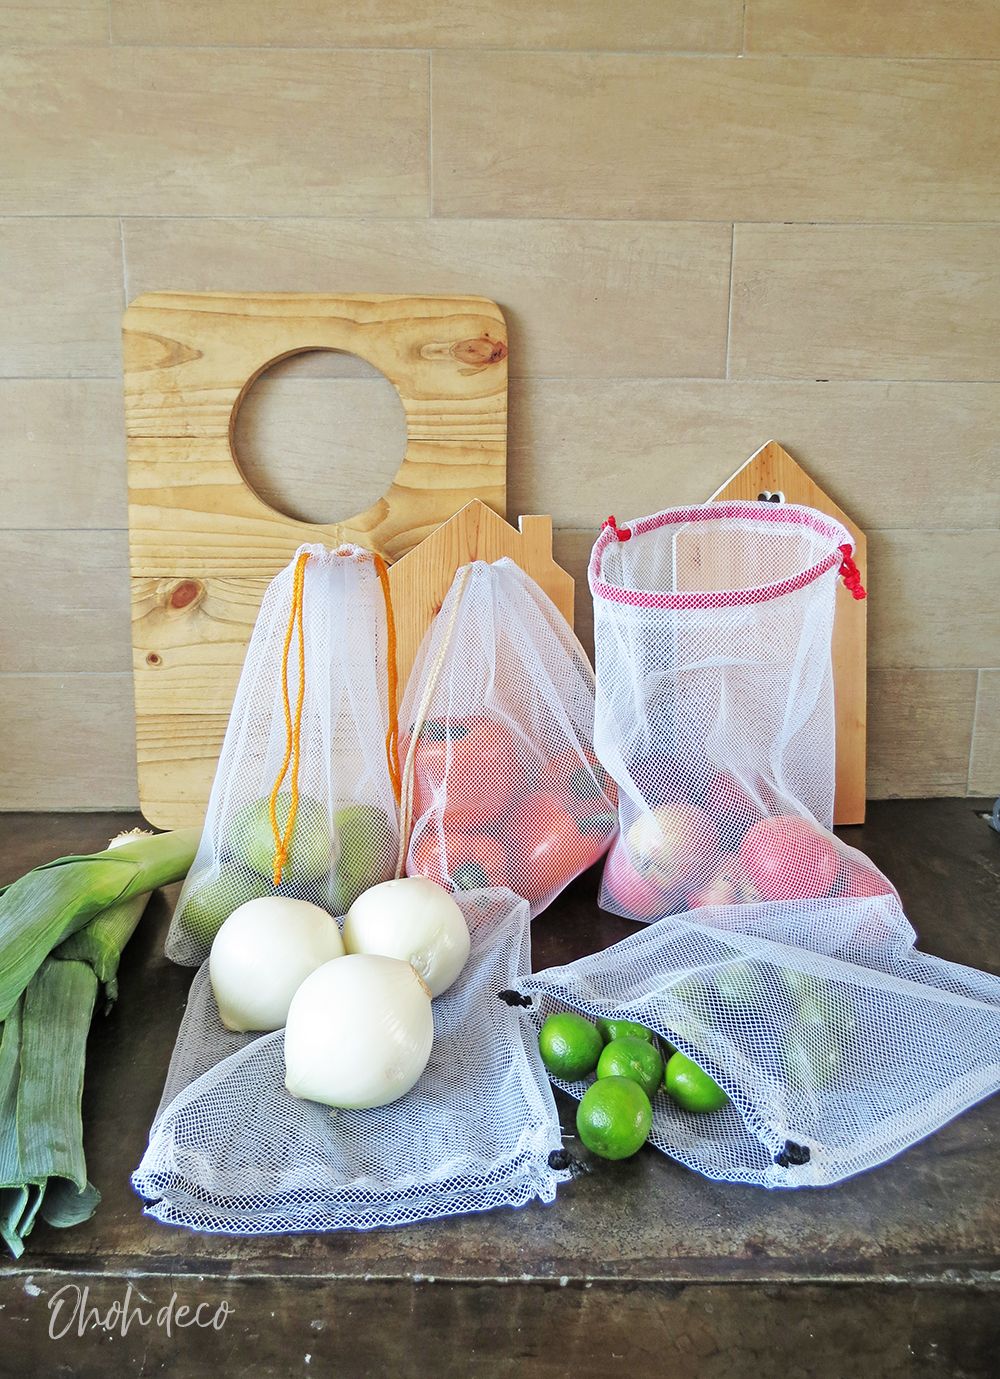 diy-reusable-bag-for-vegetable-and-fruit-16.jpg